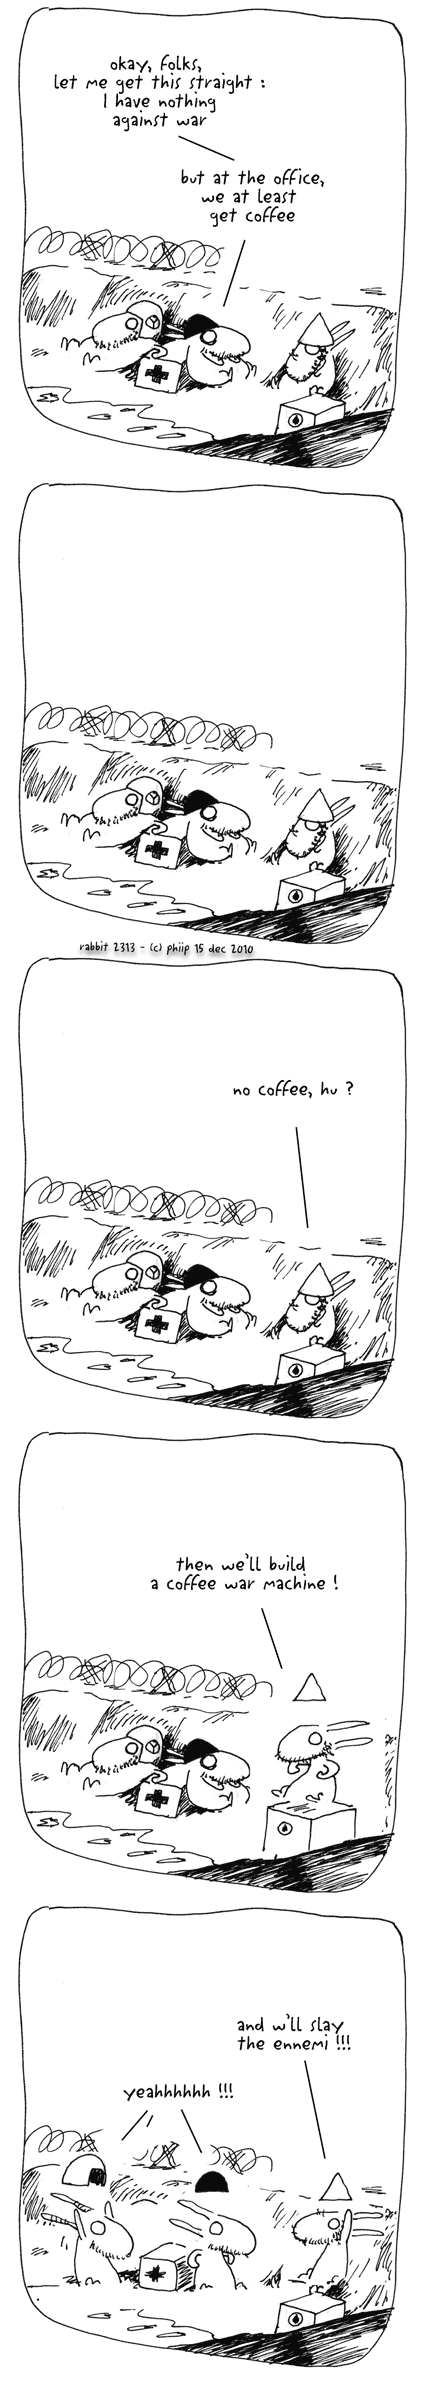 no coffee, hu